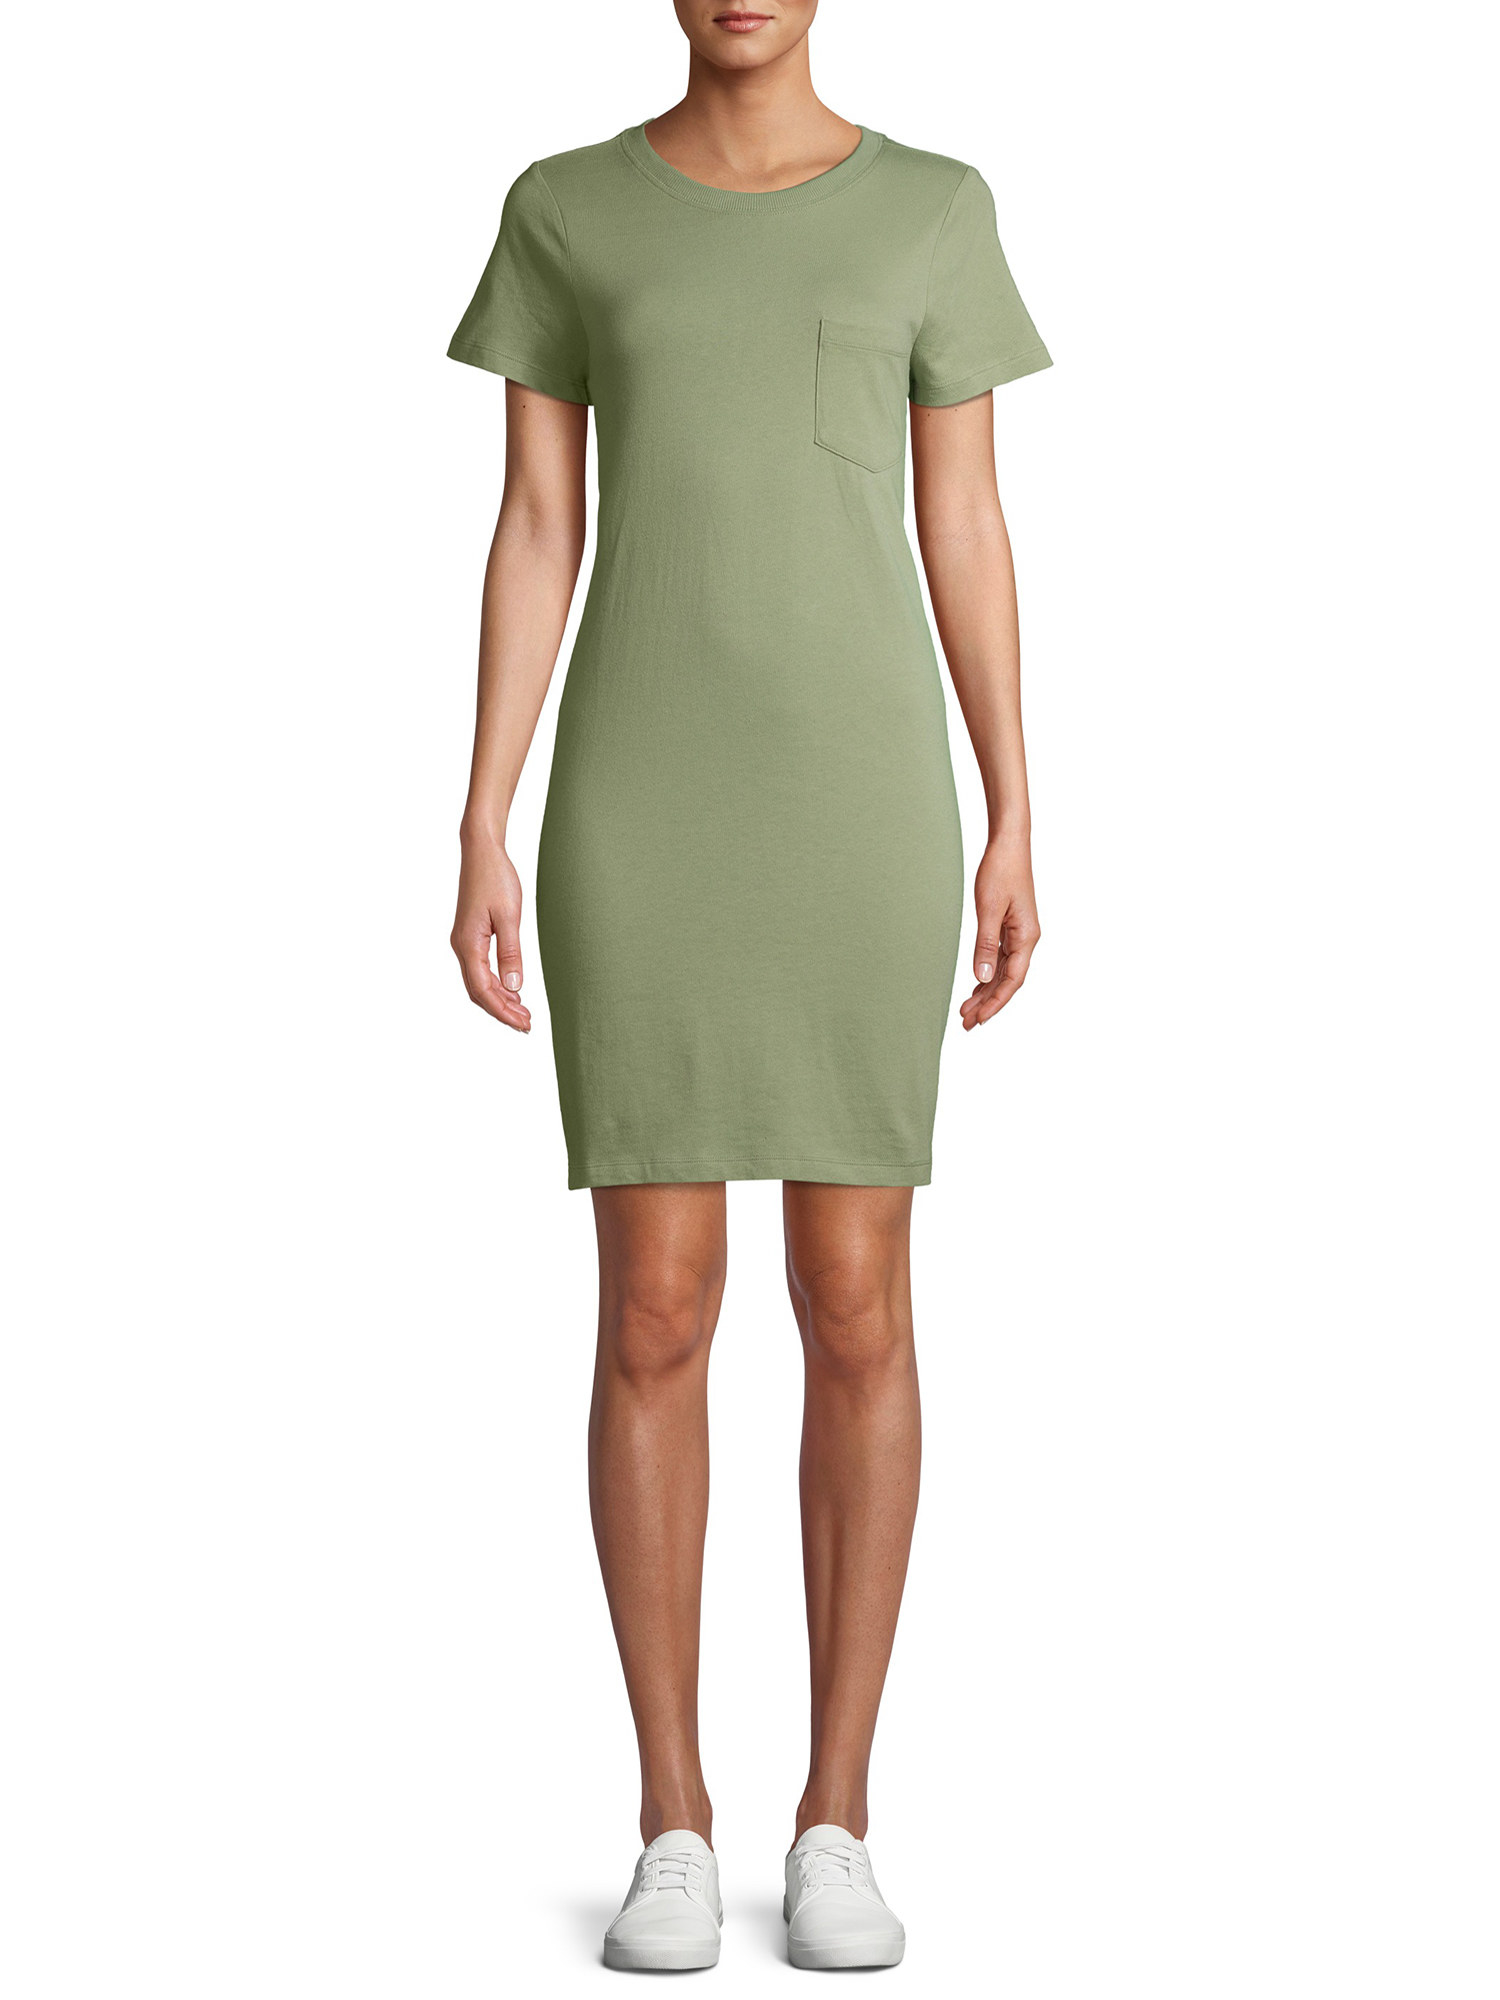 model in an olive green t-shirt dress